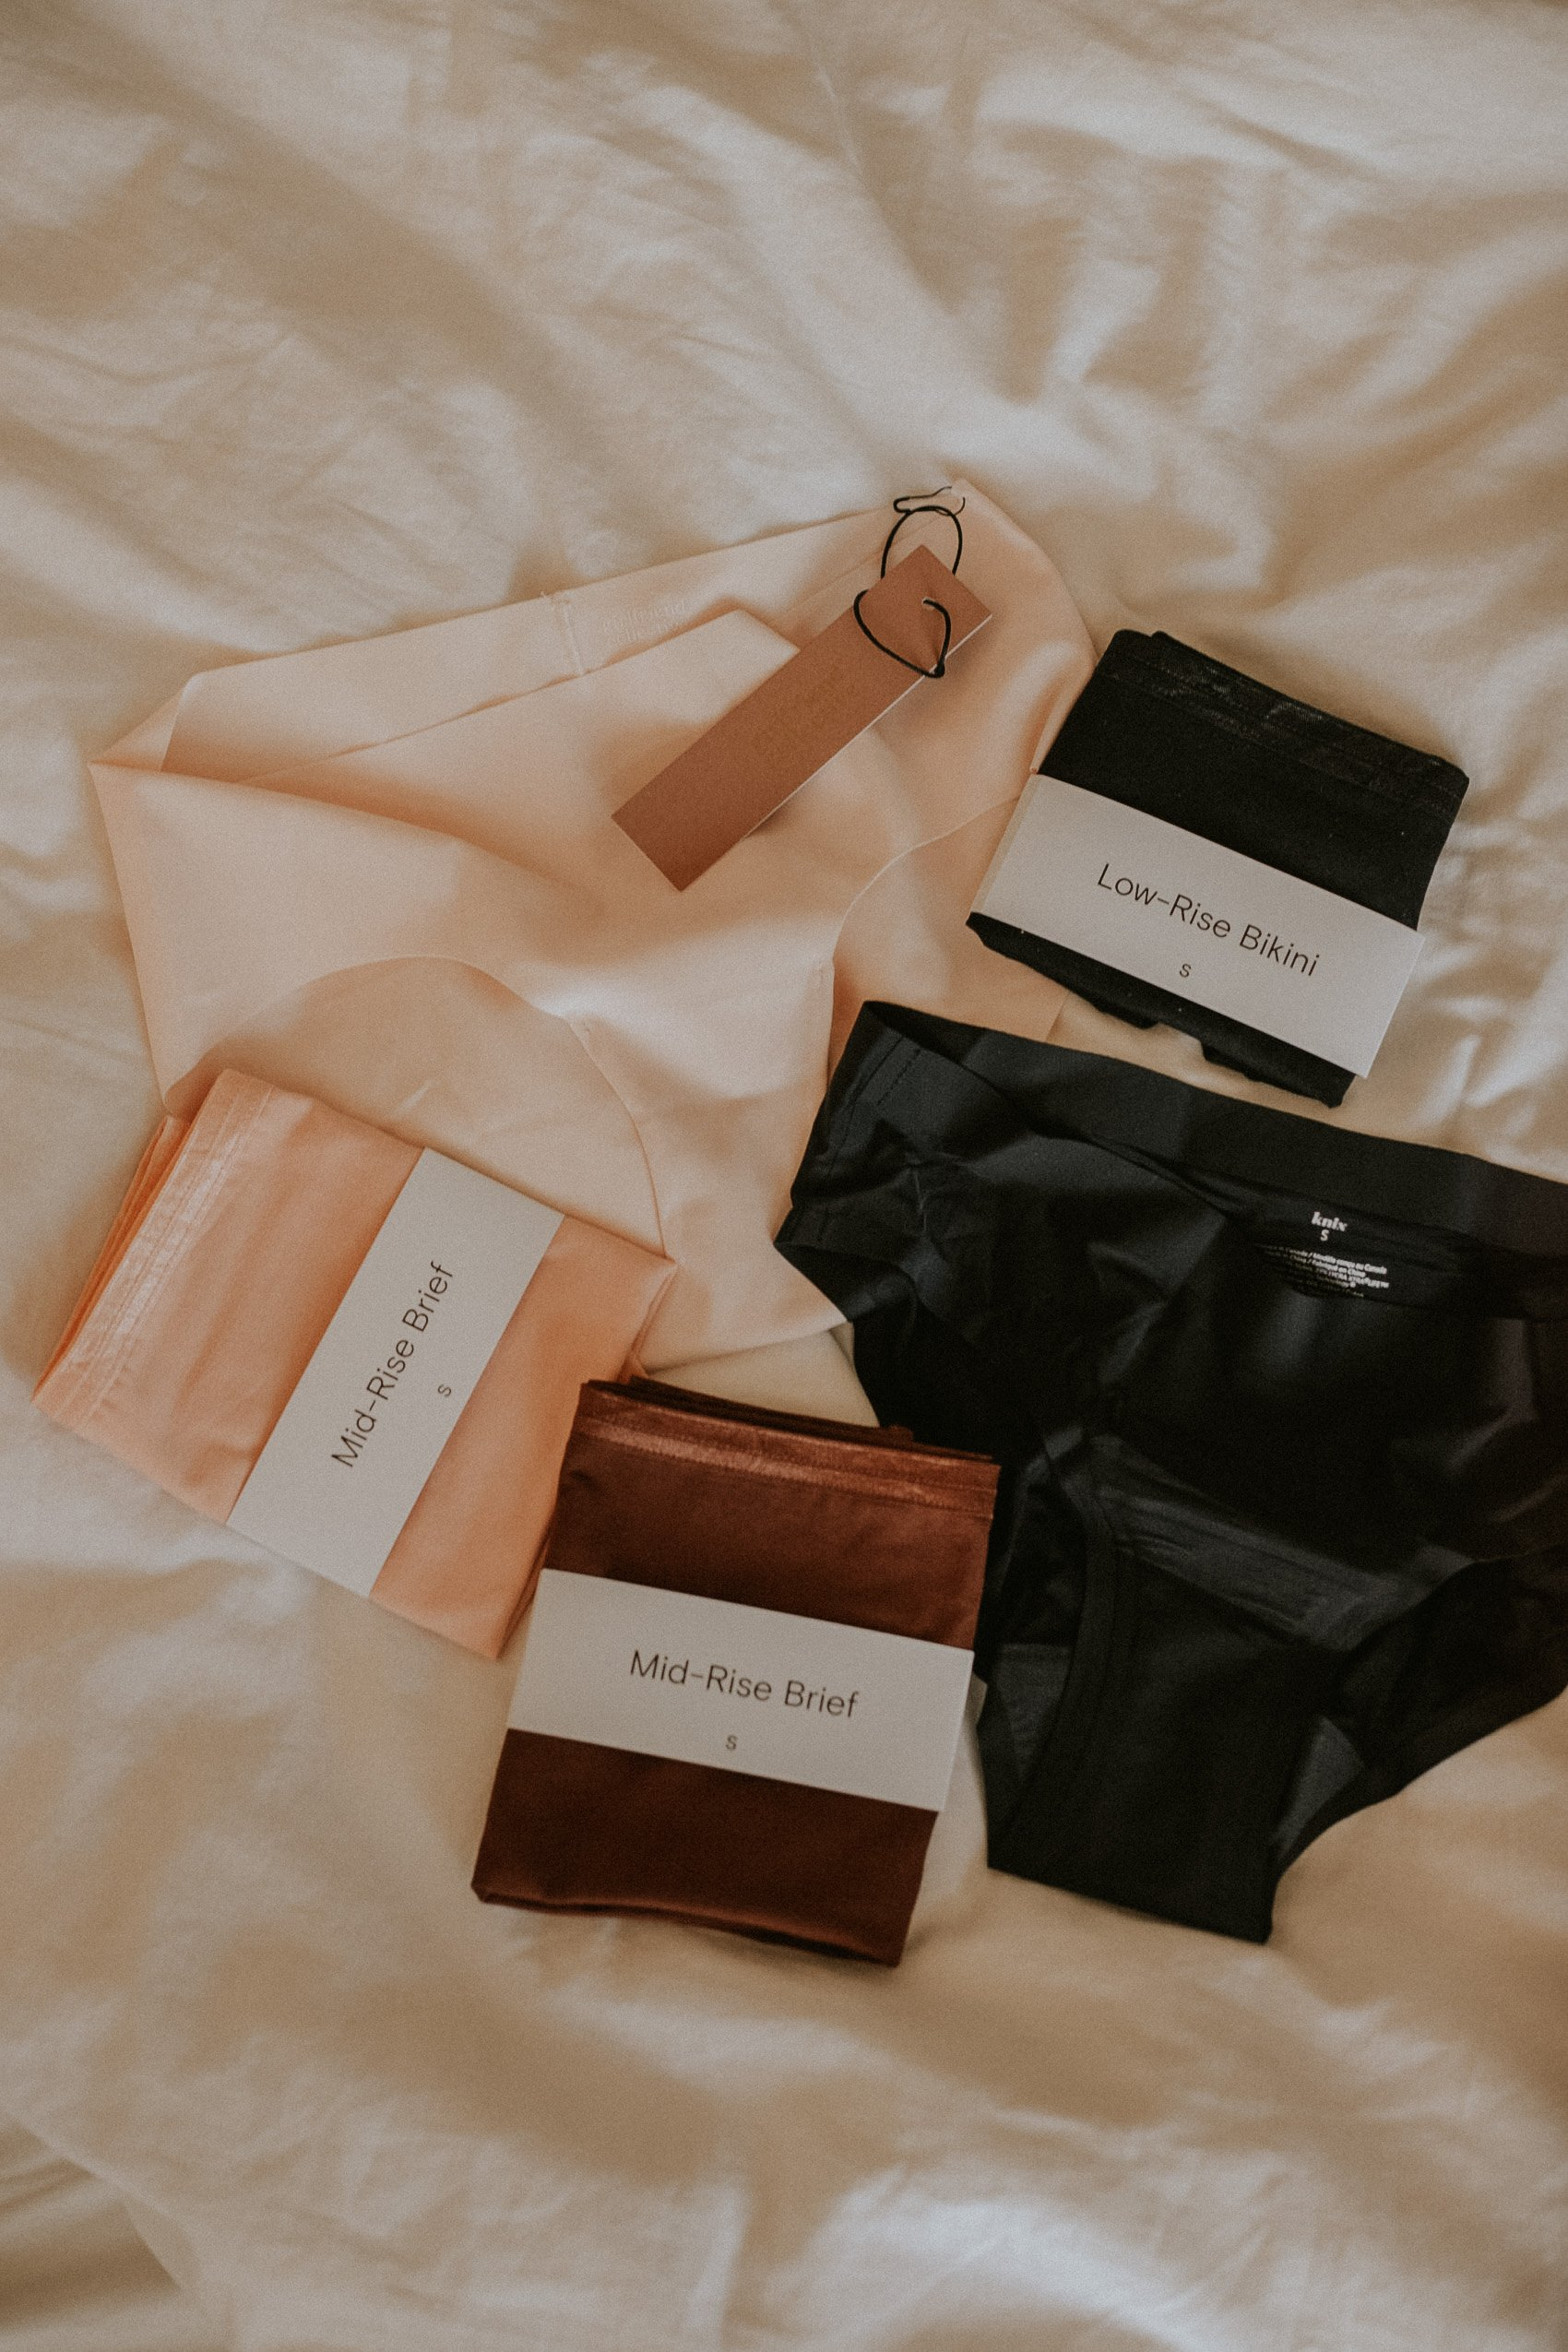 Ethical and Sustainable Underwear options from knickey, Girlfriend, and Knix